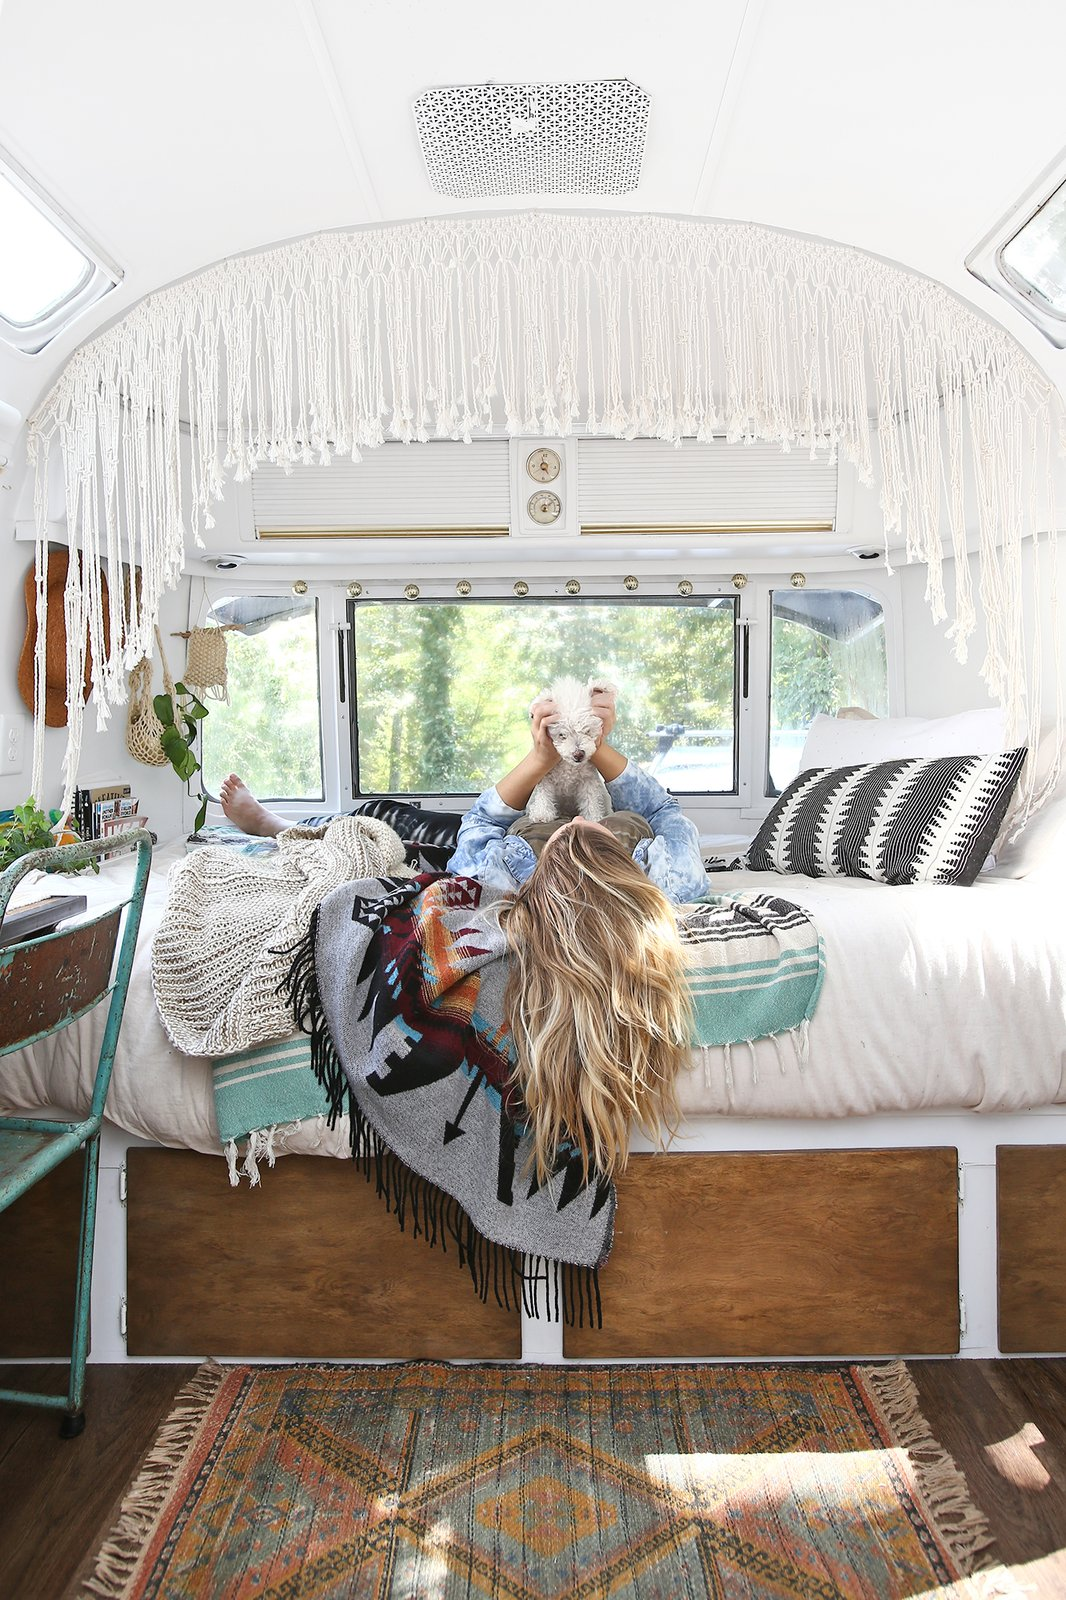 18 Things You Should Know Before Moving Into a Tiny Home - Dwell